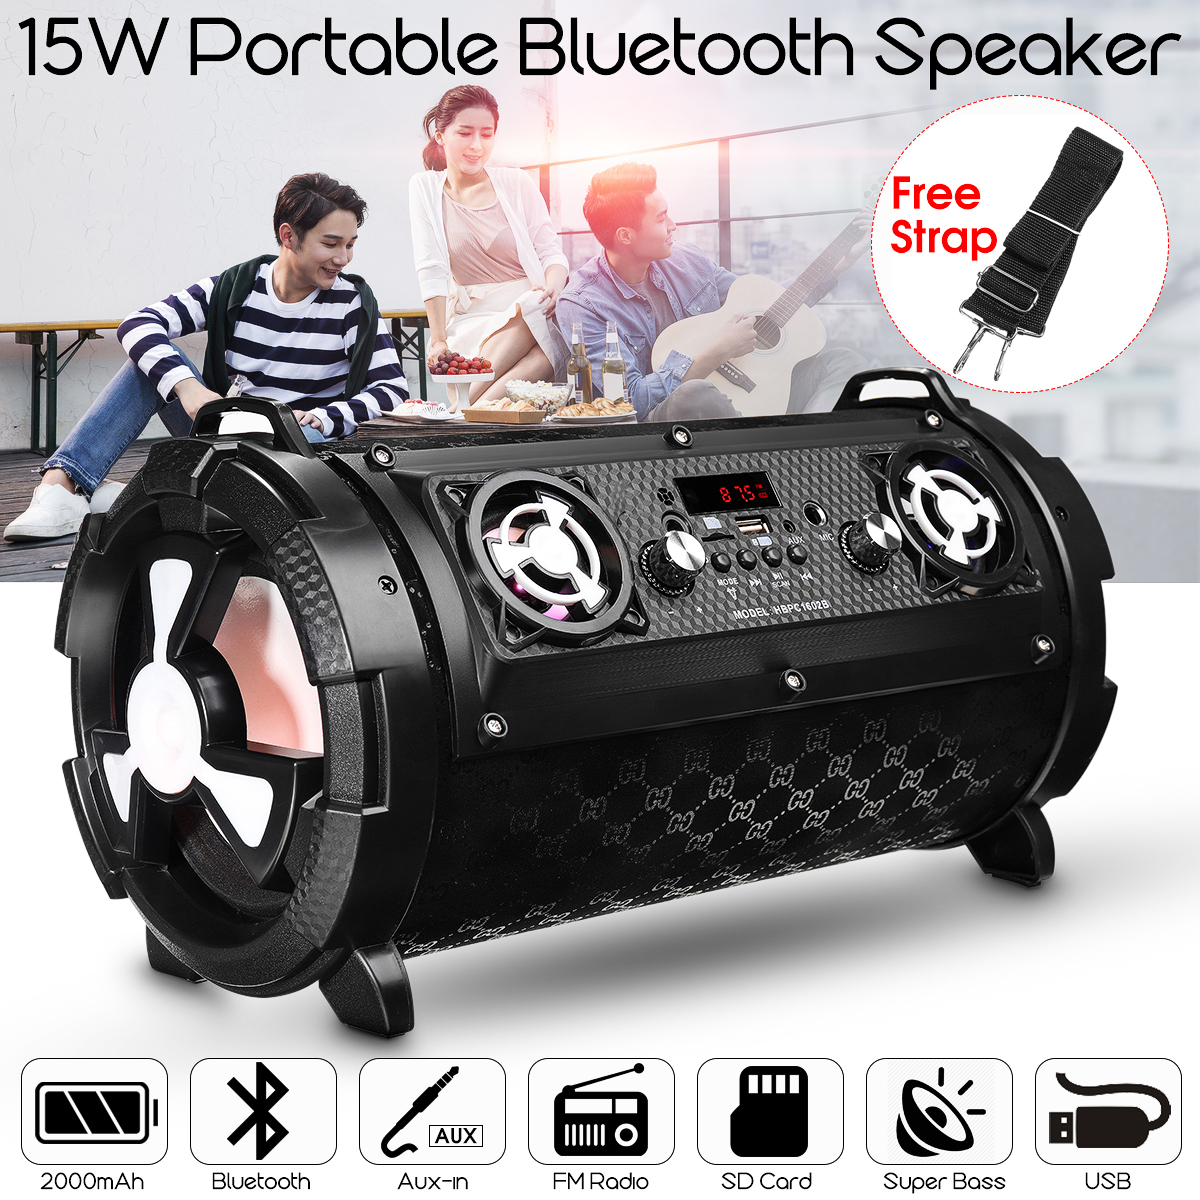 KINCO 15W Bass Outdoor Sports Portable Bluetooth Speaker Wireless Subwoofer Hi-Fi Radio FM /AUX / TF / USB With Microphone leory sy1602 newest outdoor portable bluetooth speaker 15w 2000mah wireless subwoofer speaker with microphone multicolor